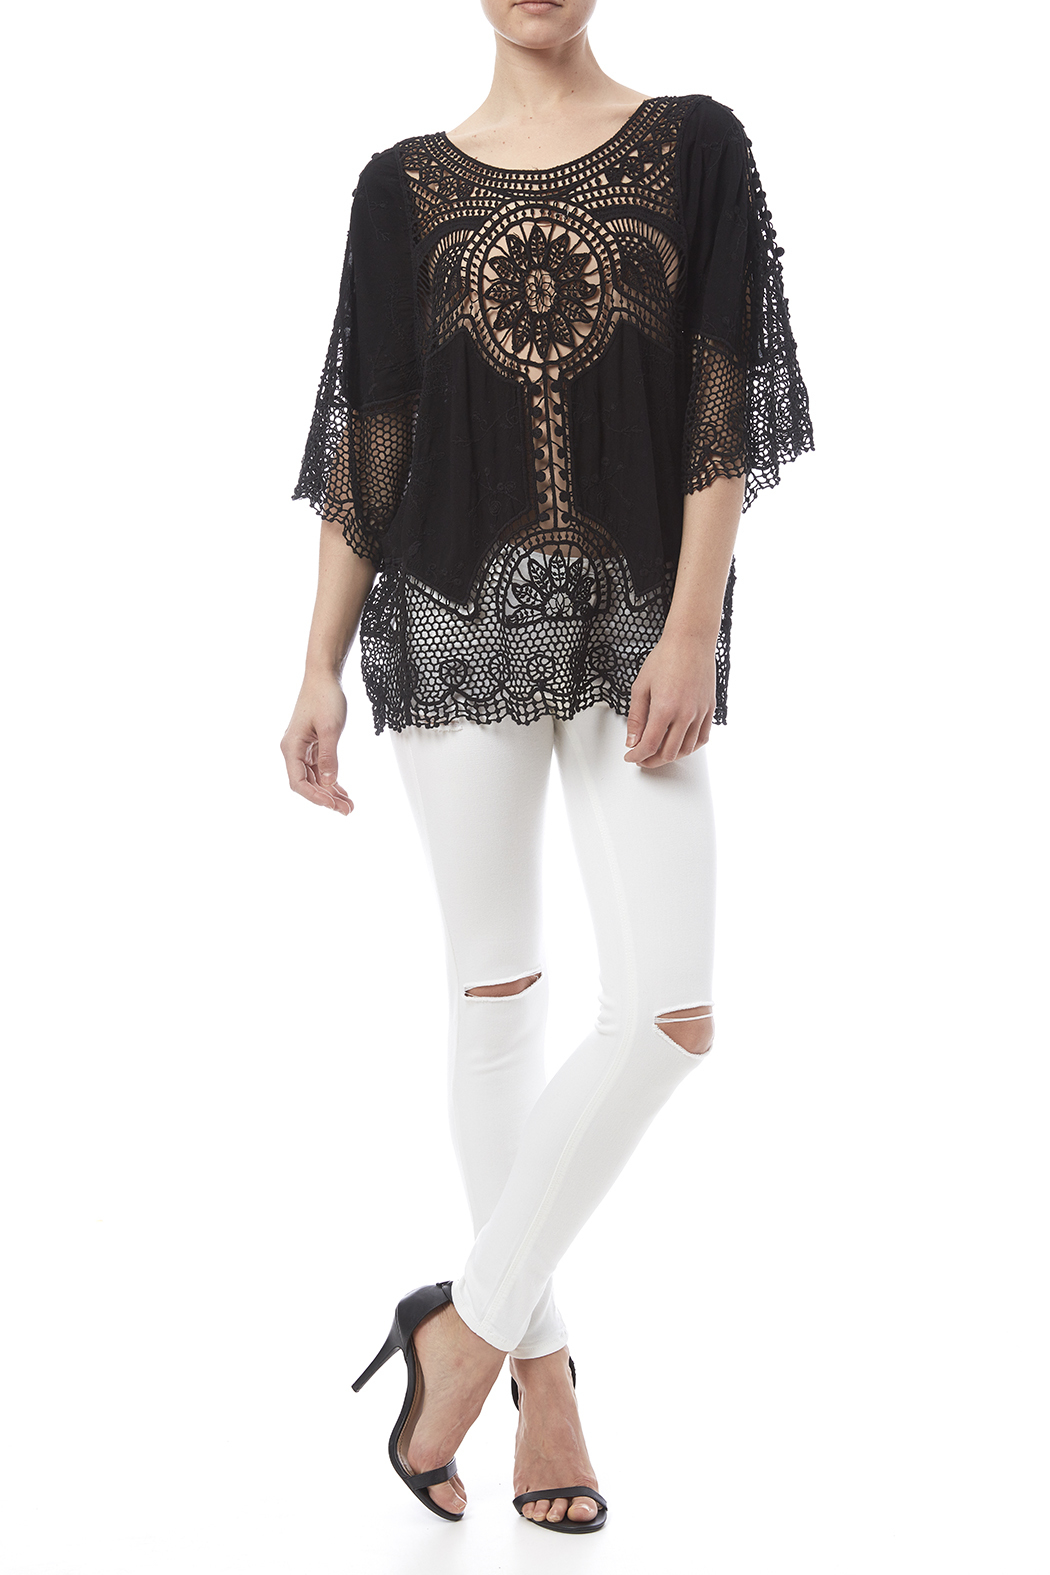 fashion on earth Black Crochet Top - Front Full Image